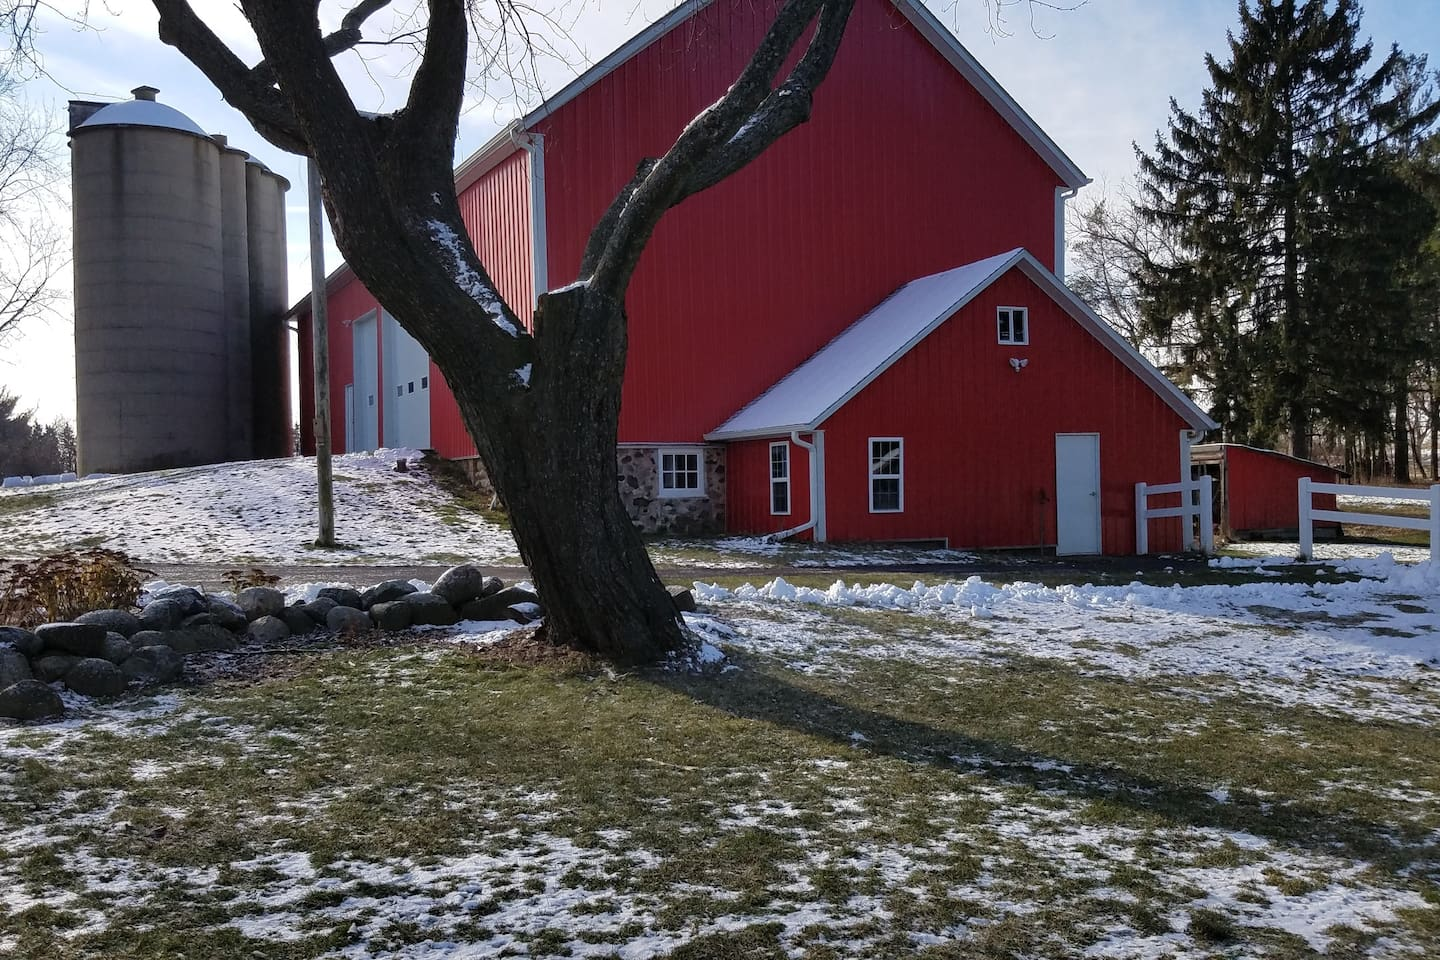 You will know you have arrived when you see our bright red barn....Welcome